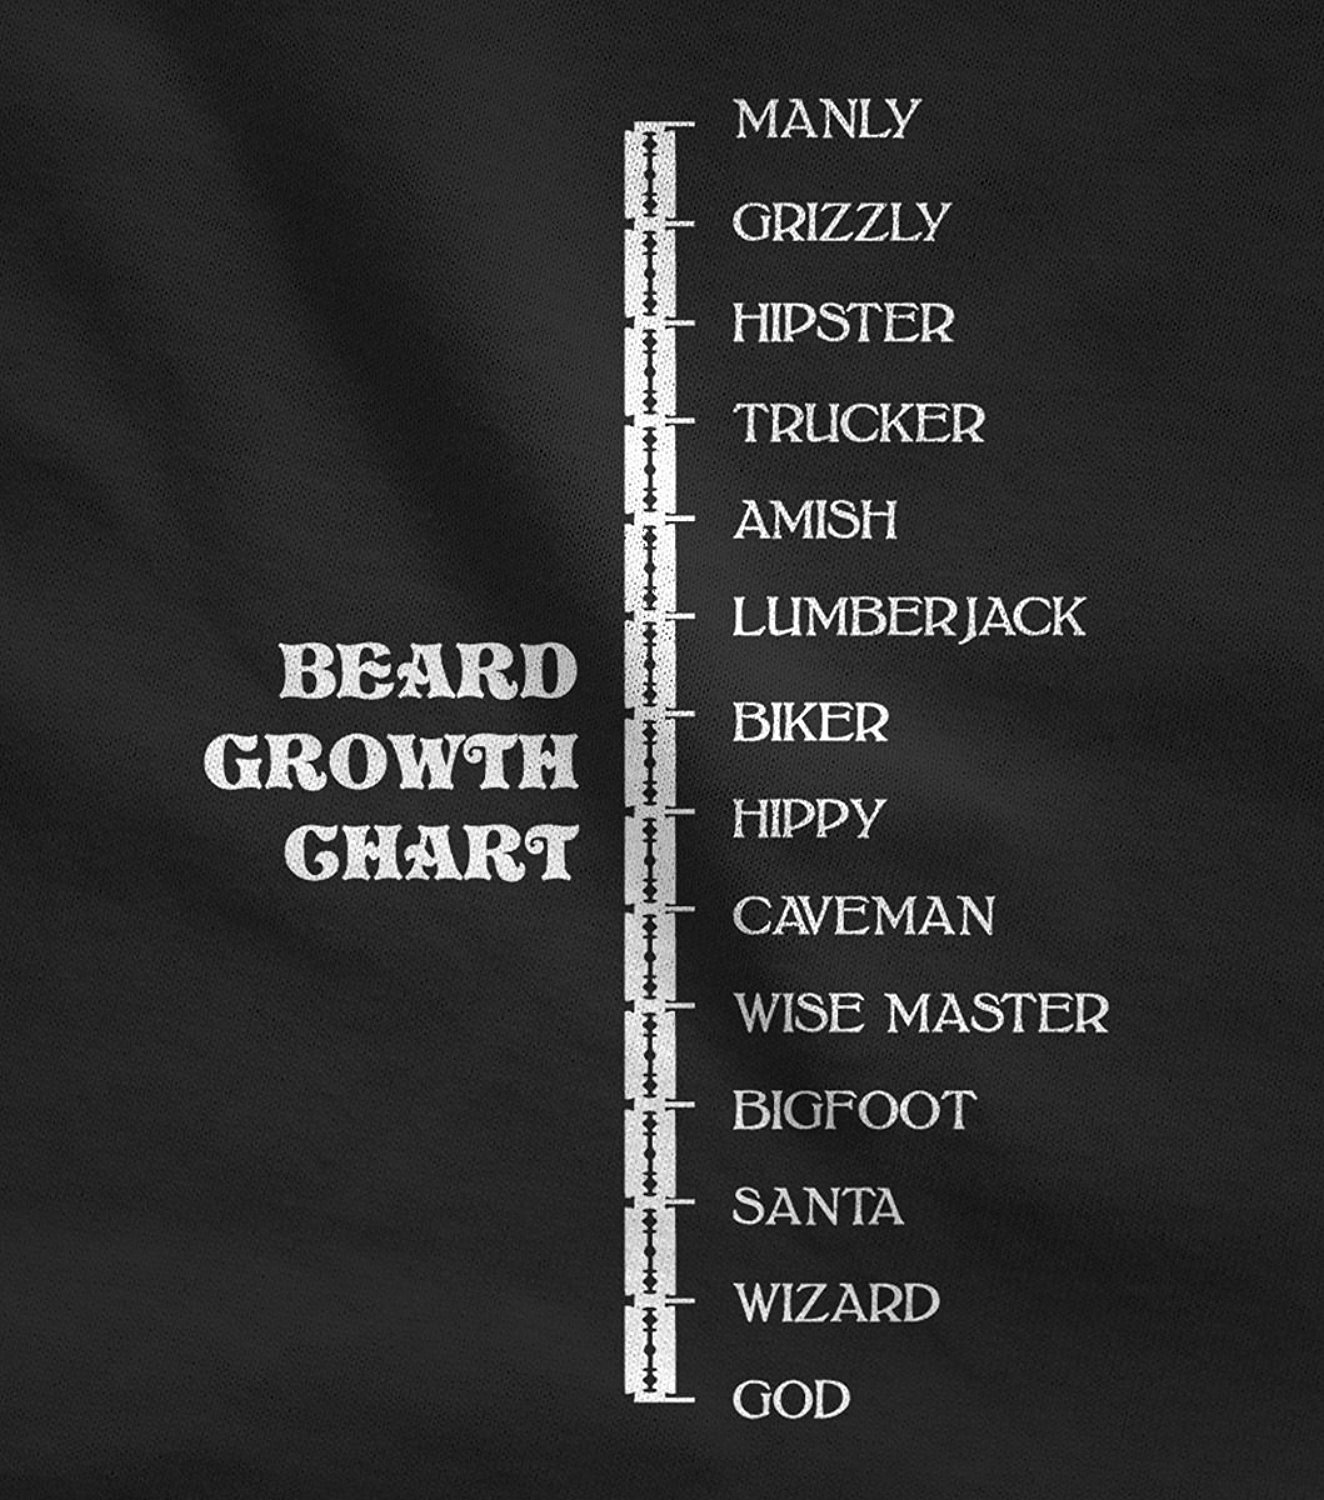 Funny clothing casual t shirts beard growth chart funny manly god funny clothing casual t shirts beard growth chart funny manly god scale gift idea short men crew neck best friend shirts in t shirts from mens clothing geenschuldenfo Choice Image